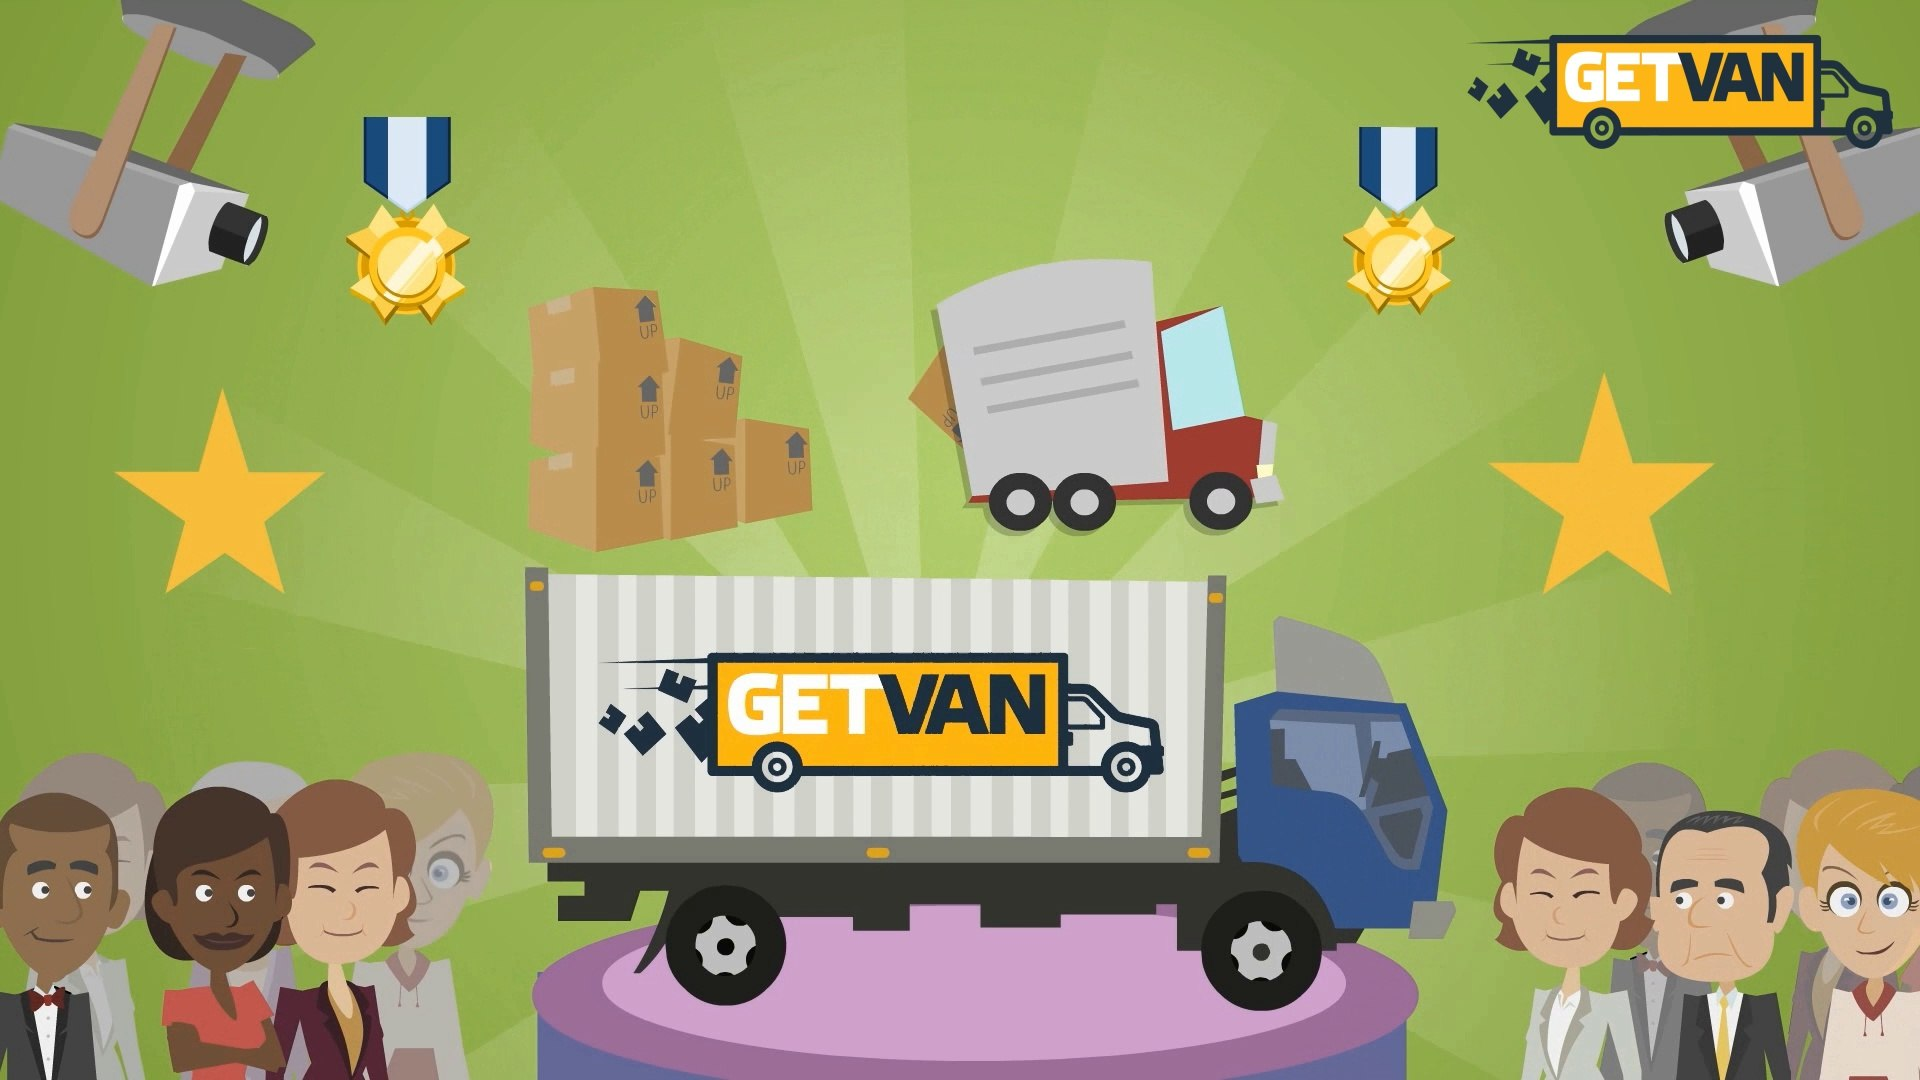 GetVan: How to delivery your eBay item with 75% OFF the delivery price?